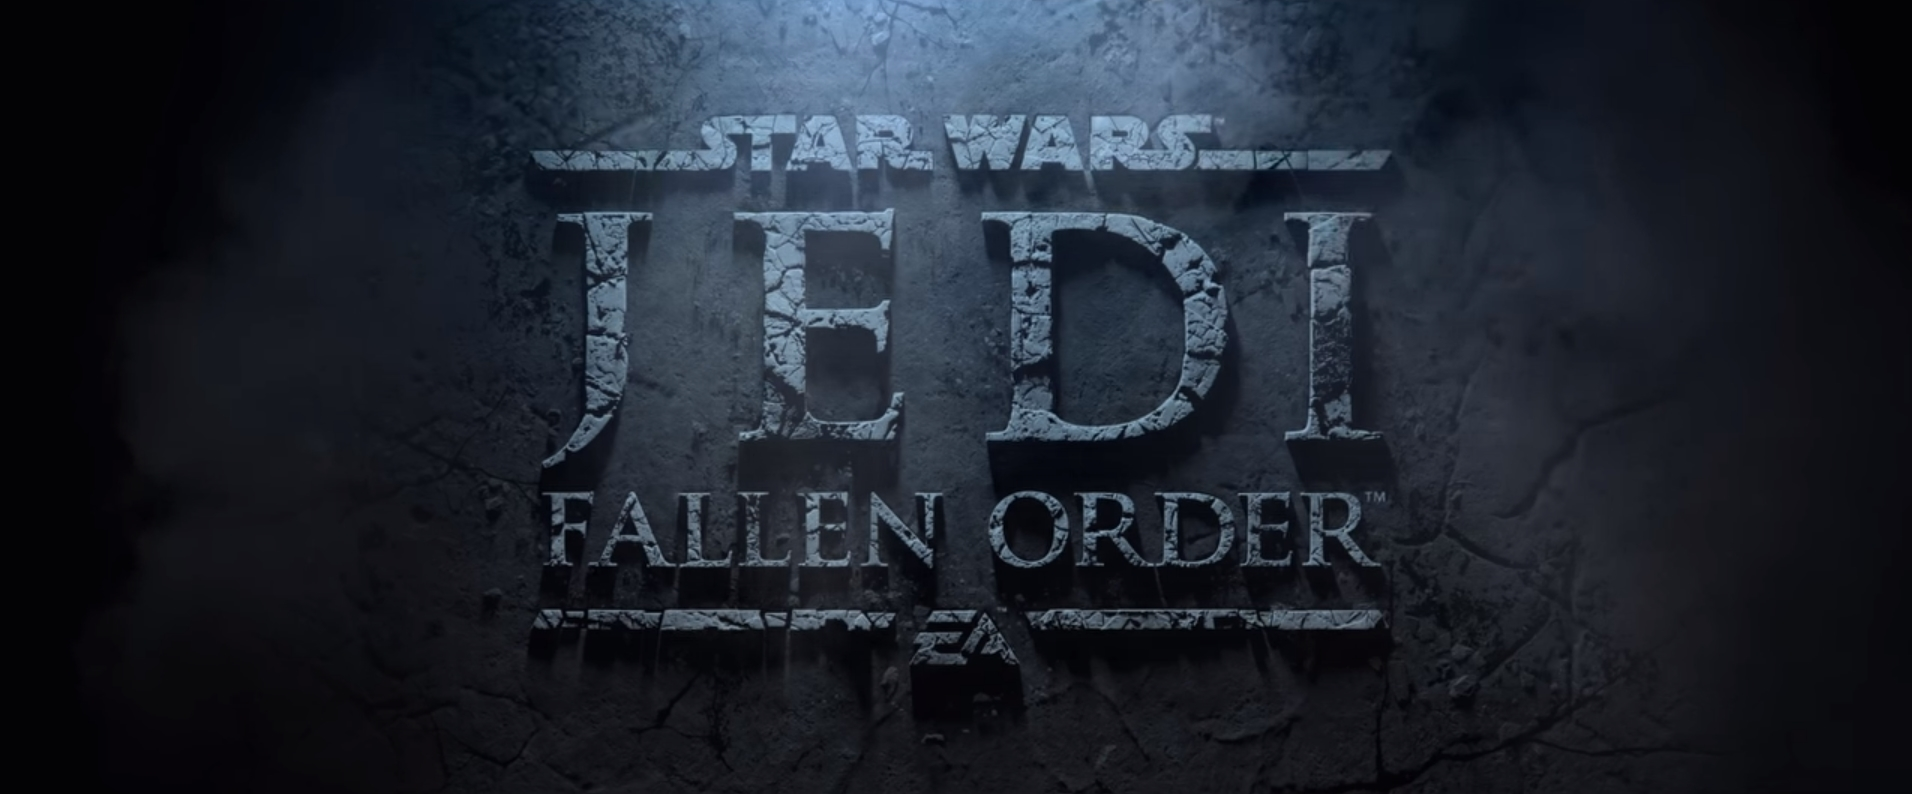 Respawn Entertainment Announces That Their Upcoming Star Wars Jedi: Fallen Order Has Gone Gold